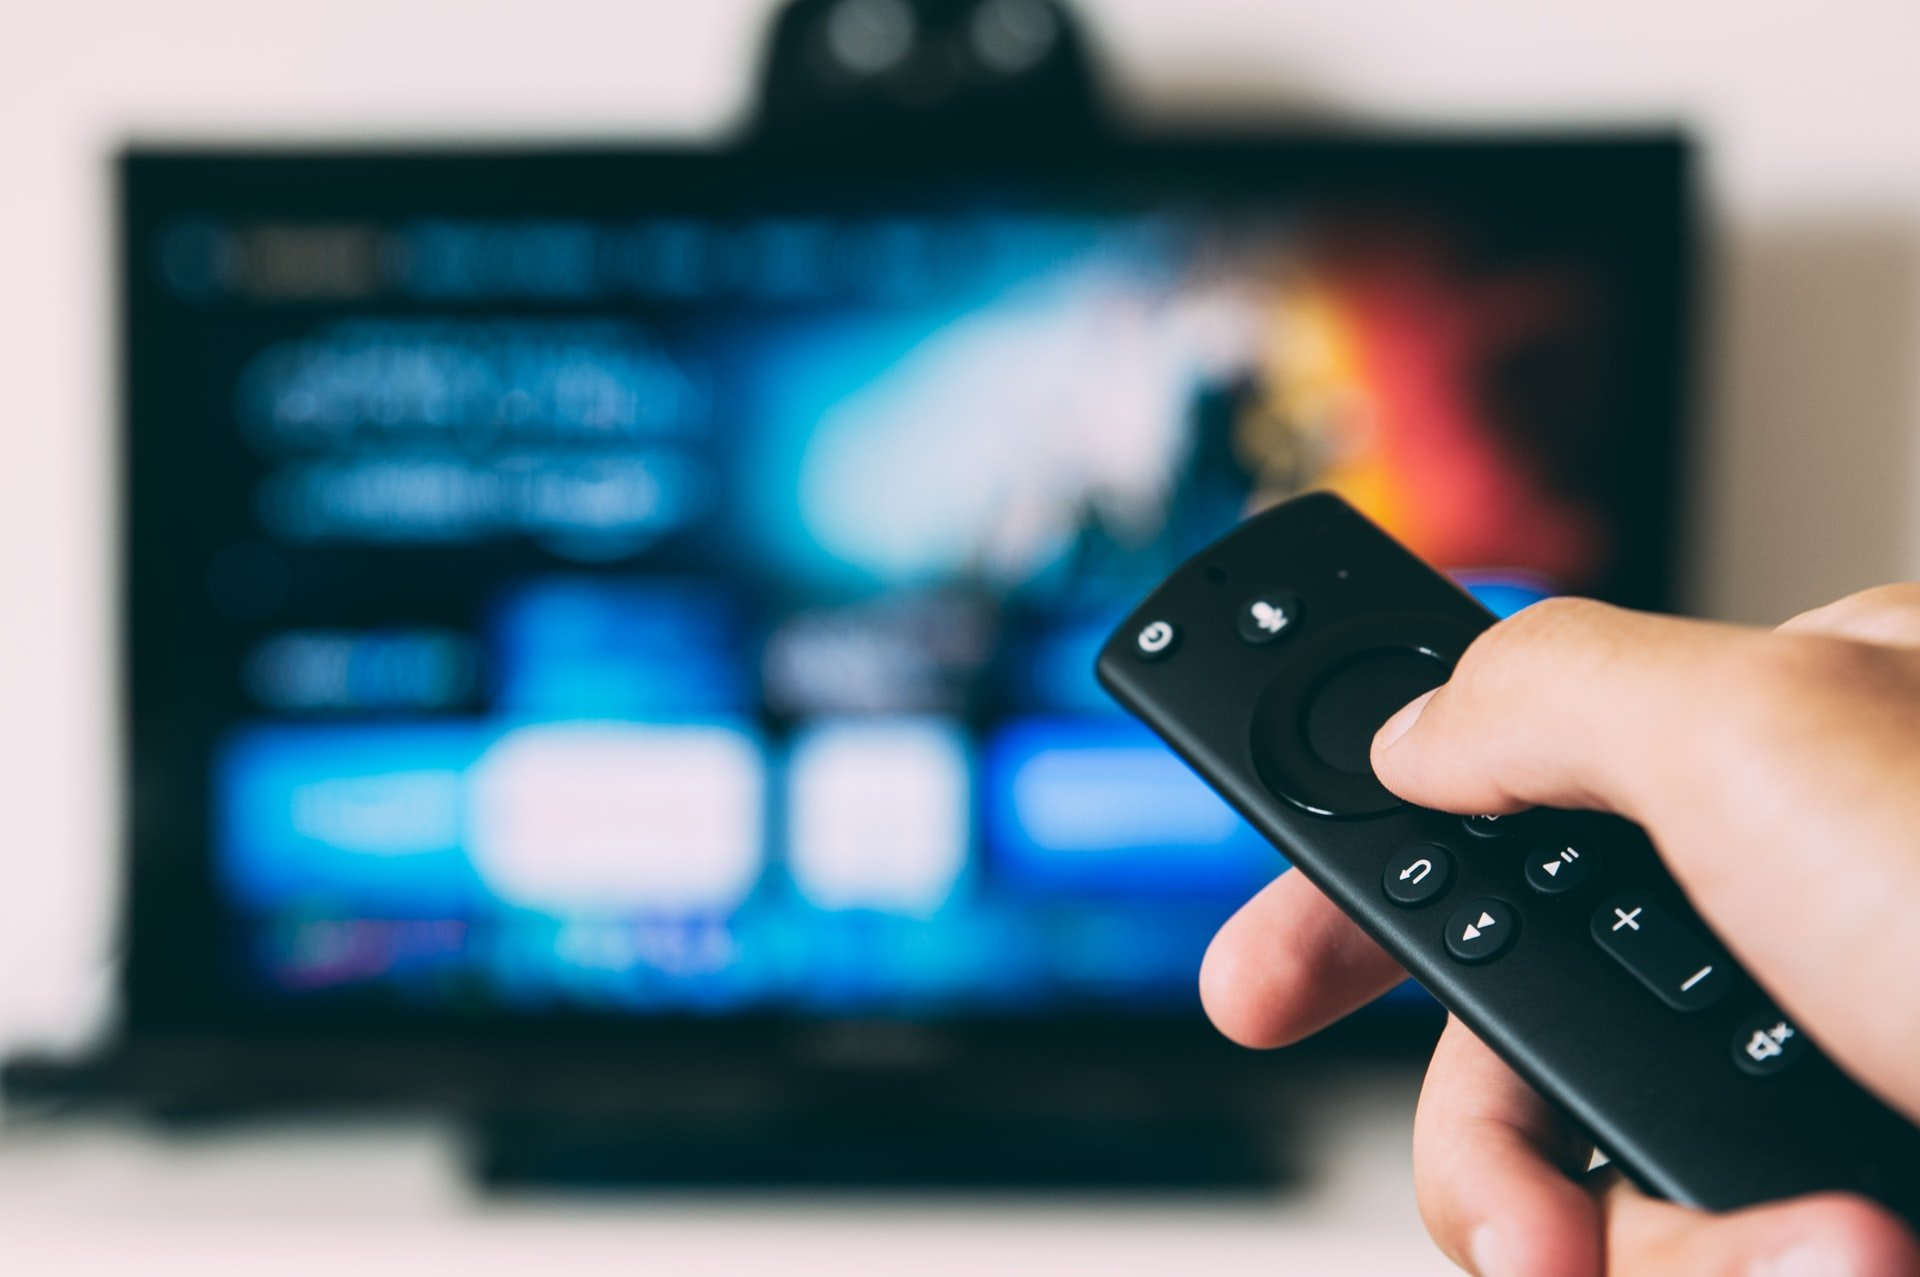 3 Best Free VPNs for the Amazon Fire TV Stick